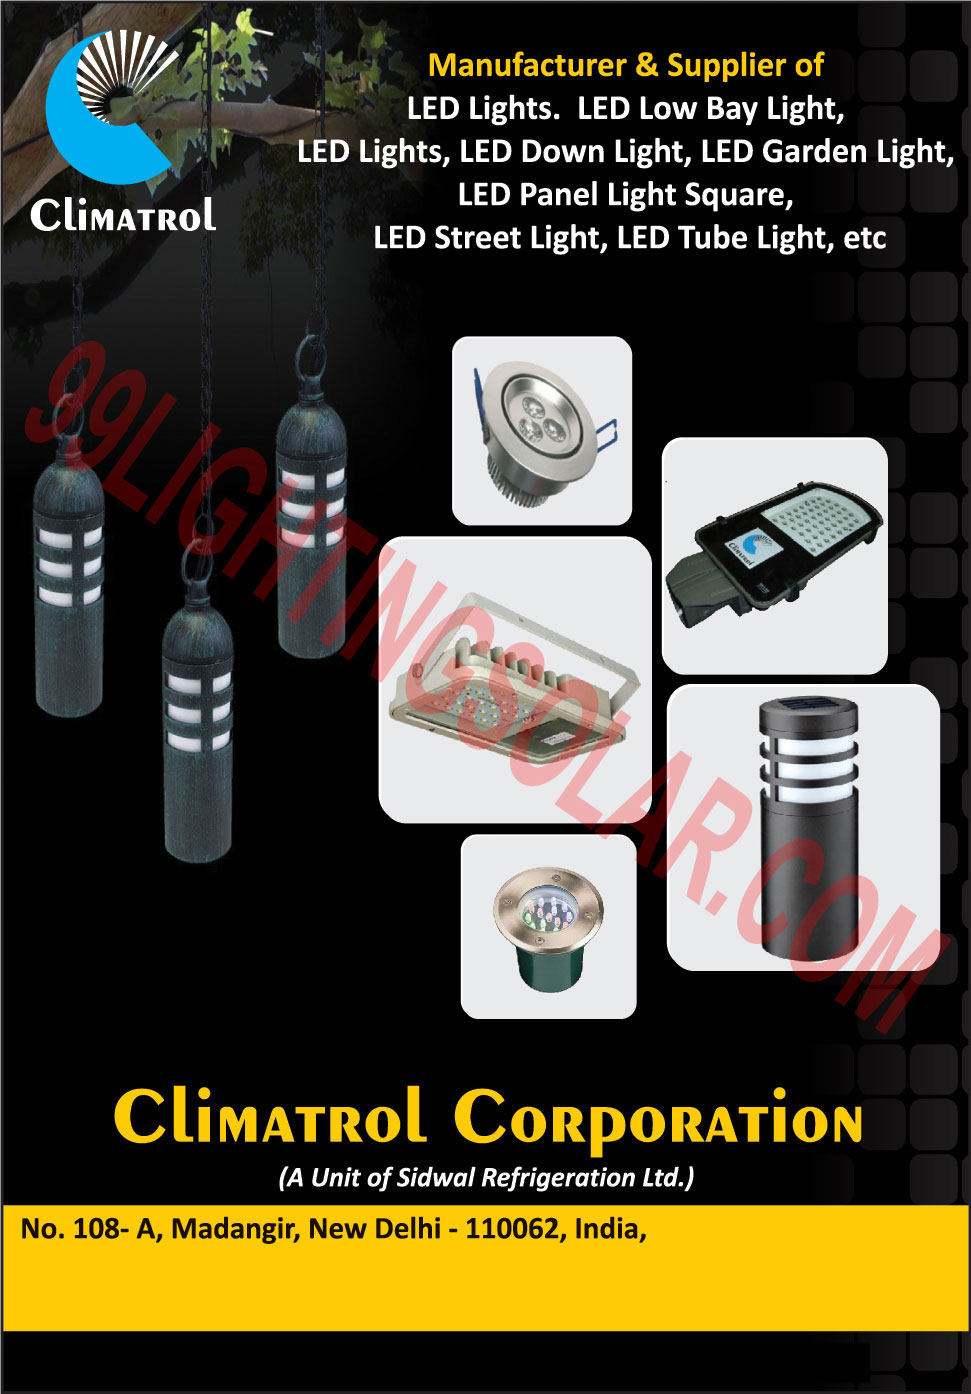 LED Low Bay Lights, LED Lights, LED Down Lights, LED Garden Lights, Square LED Panel Lights, LED Street Lights, LED Tube Lights, Down Lights, Garden Lights, Street Lights, Tube Lights, Led Bulbs, Bay Lights, Down Lights, Garden Lights, Street Lights